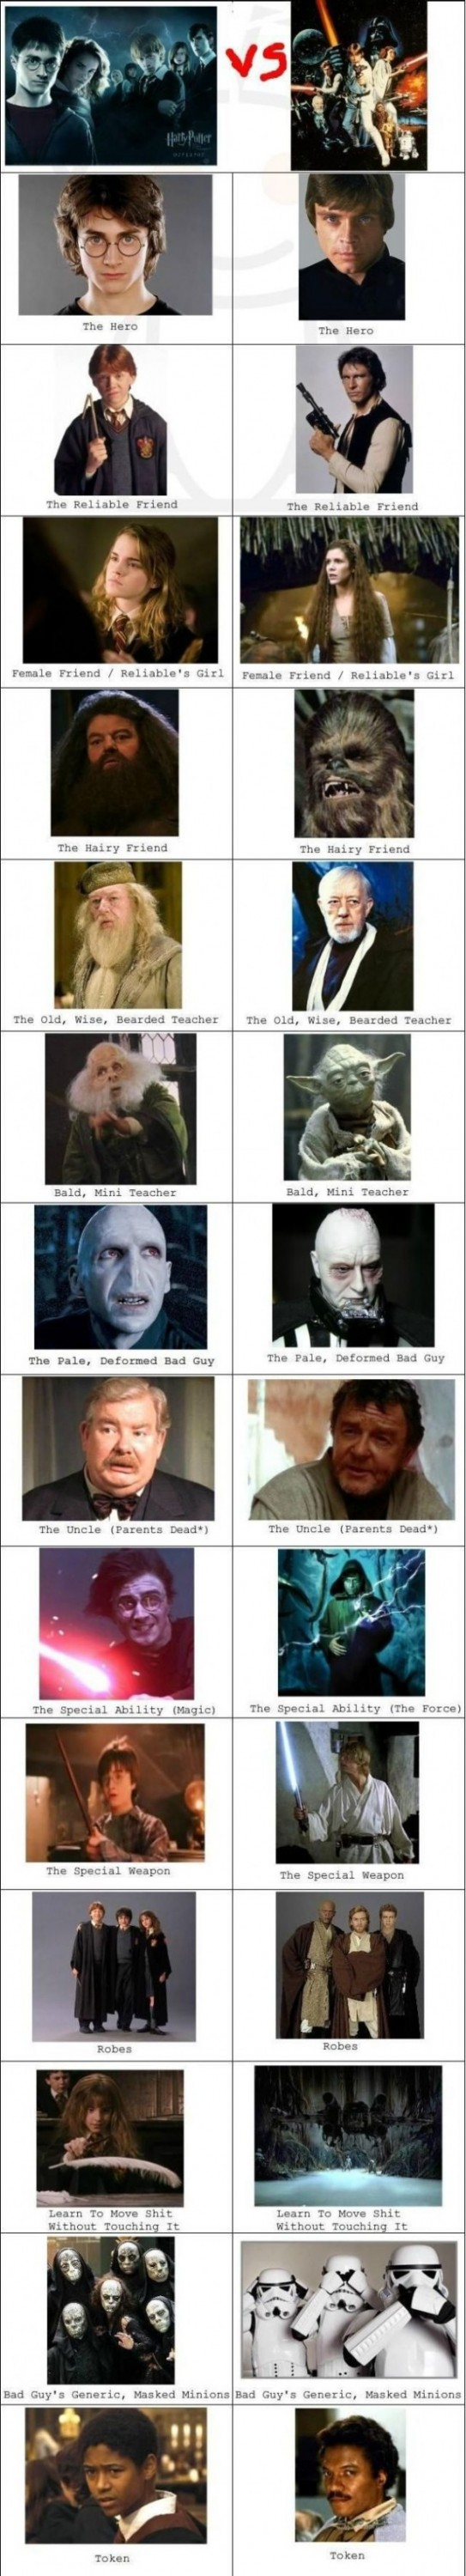 harry potter vs star wars 543x3000 Les troublantes ressemblances entre Harry Potter et Star Wars